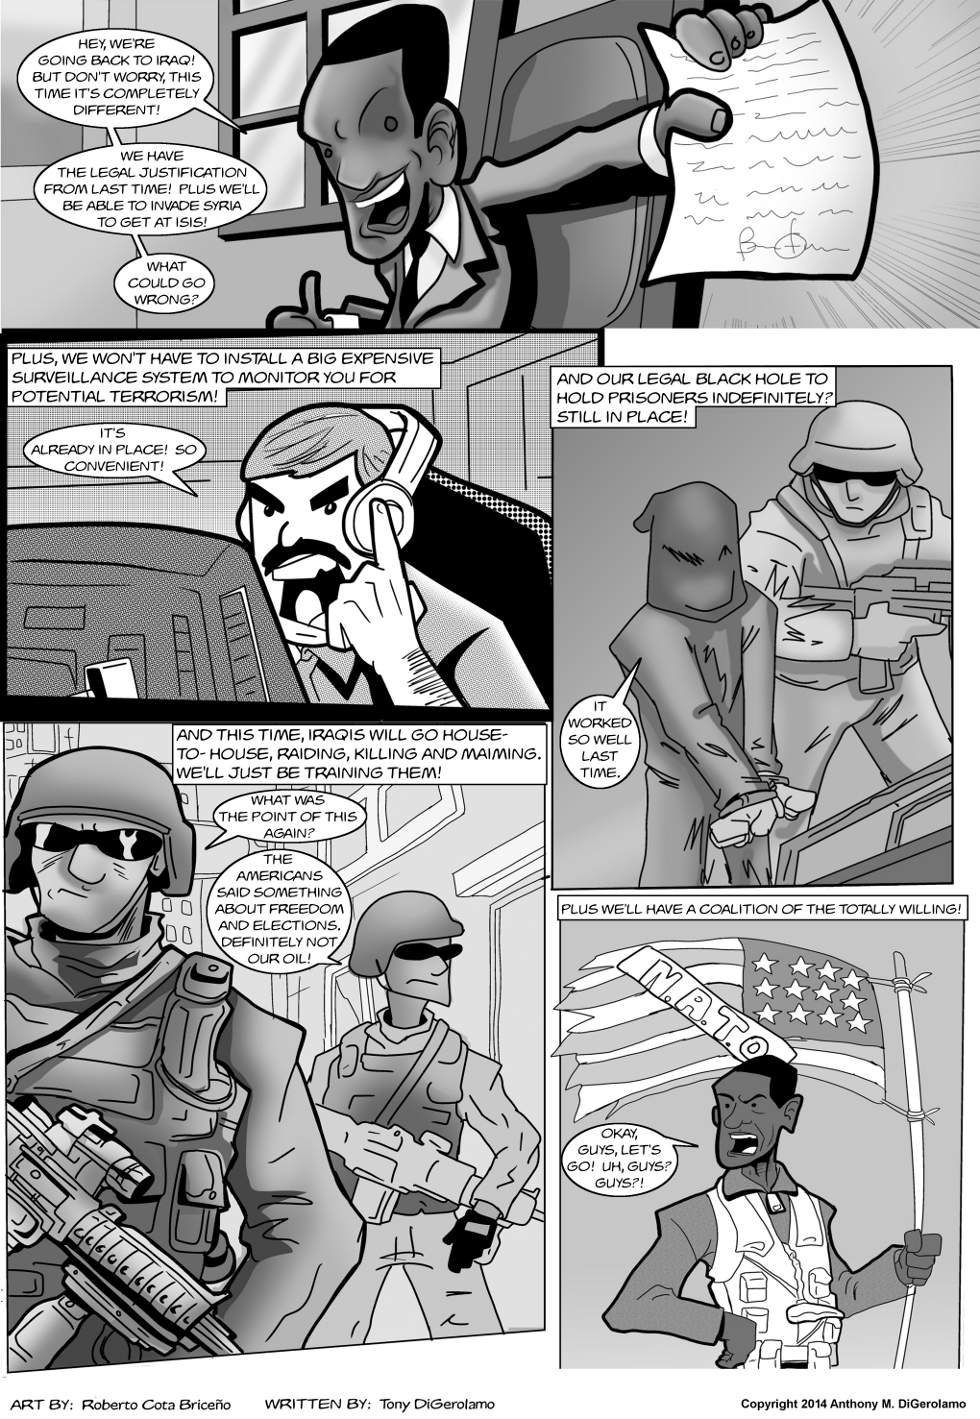 The Antiwar Comic:  Back in Iraq